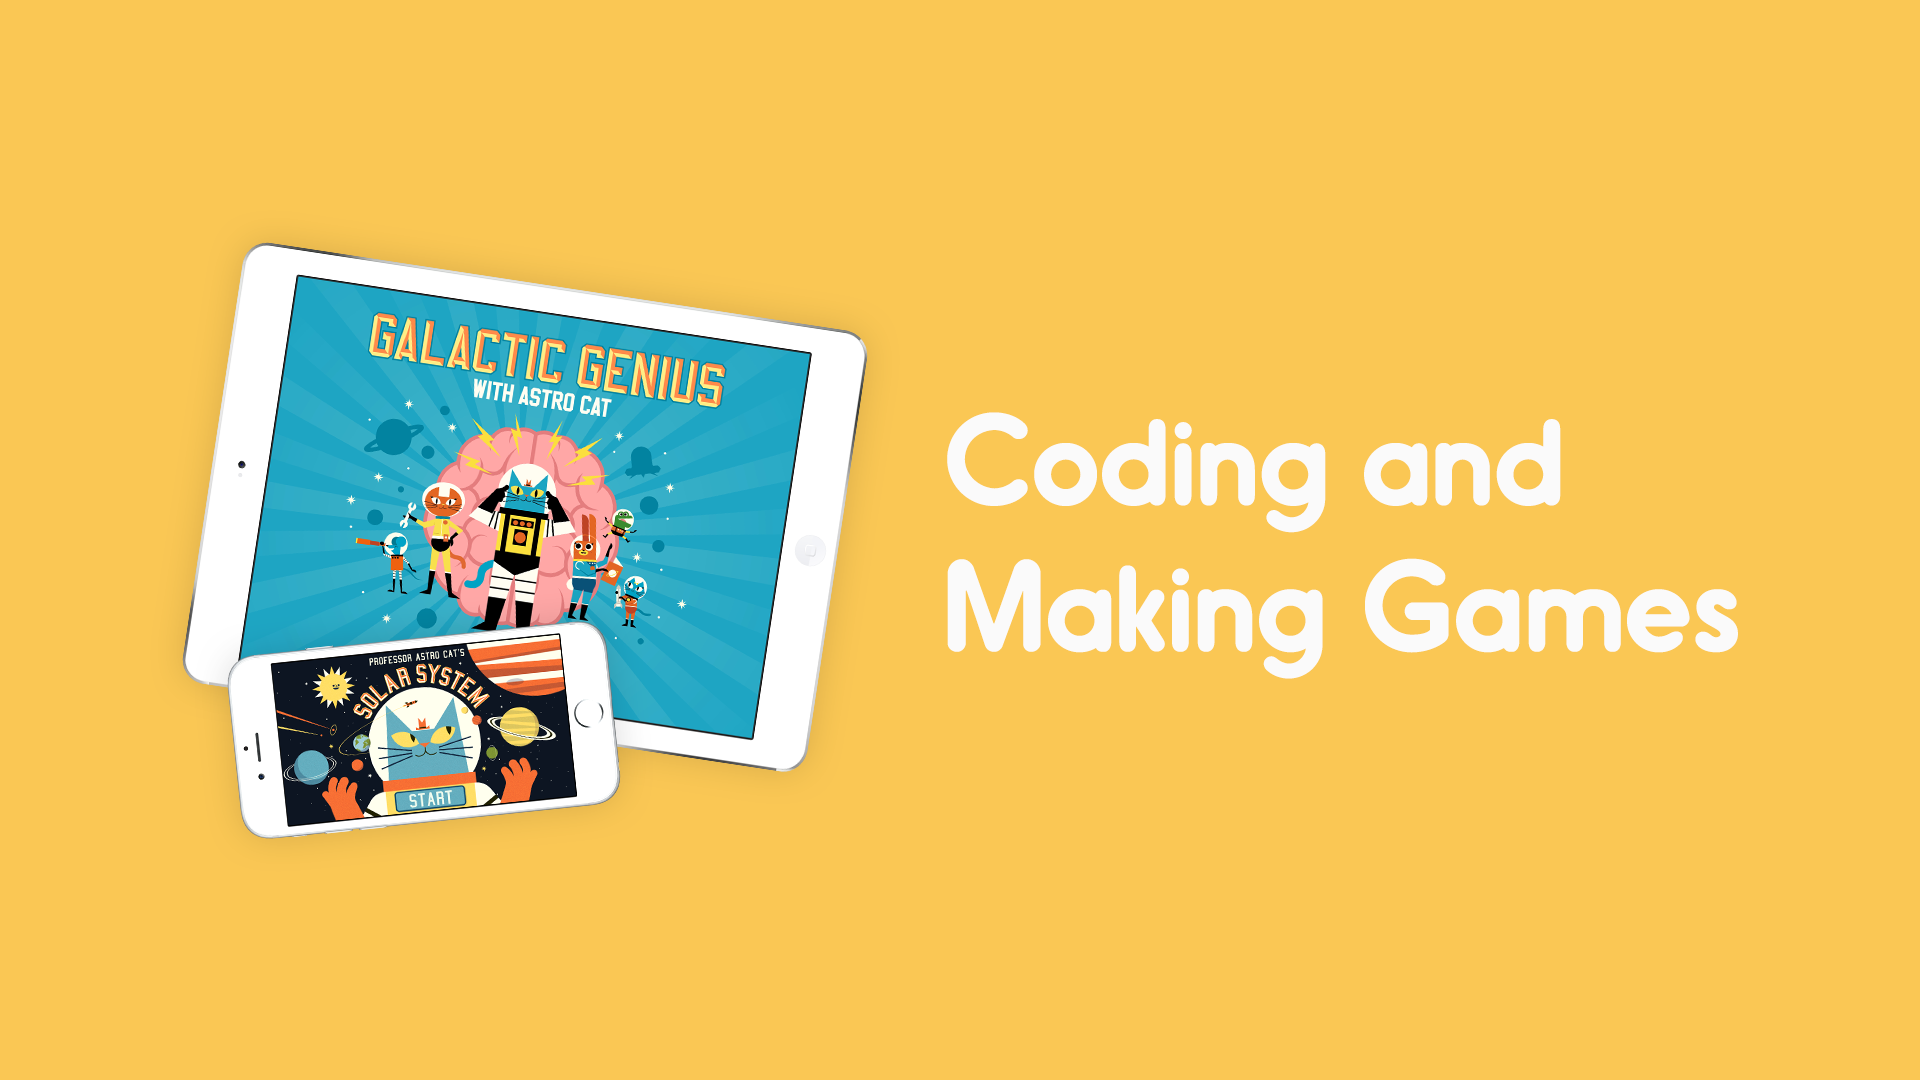 Coding and making games